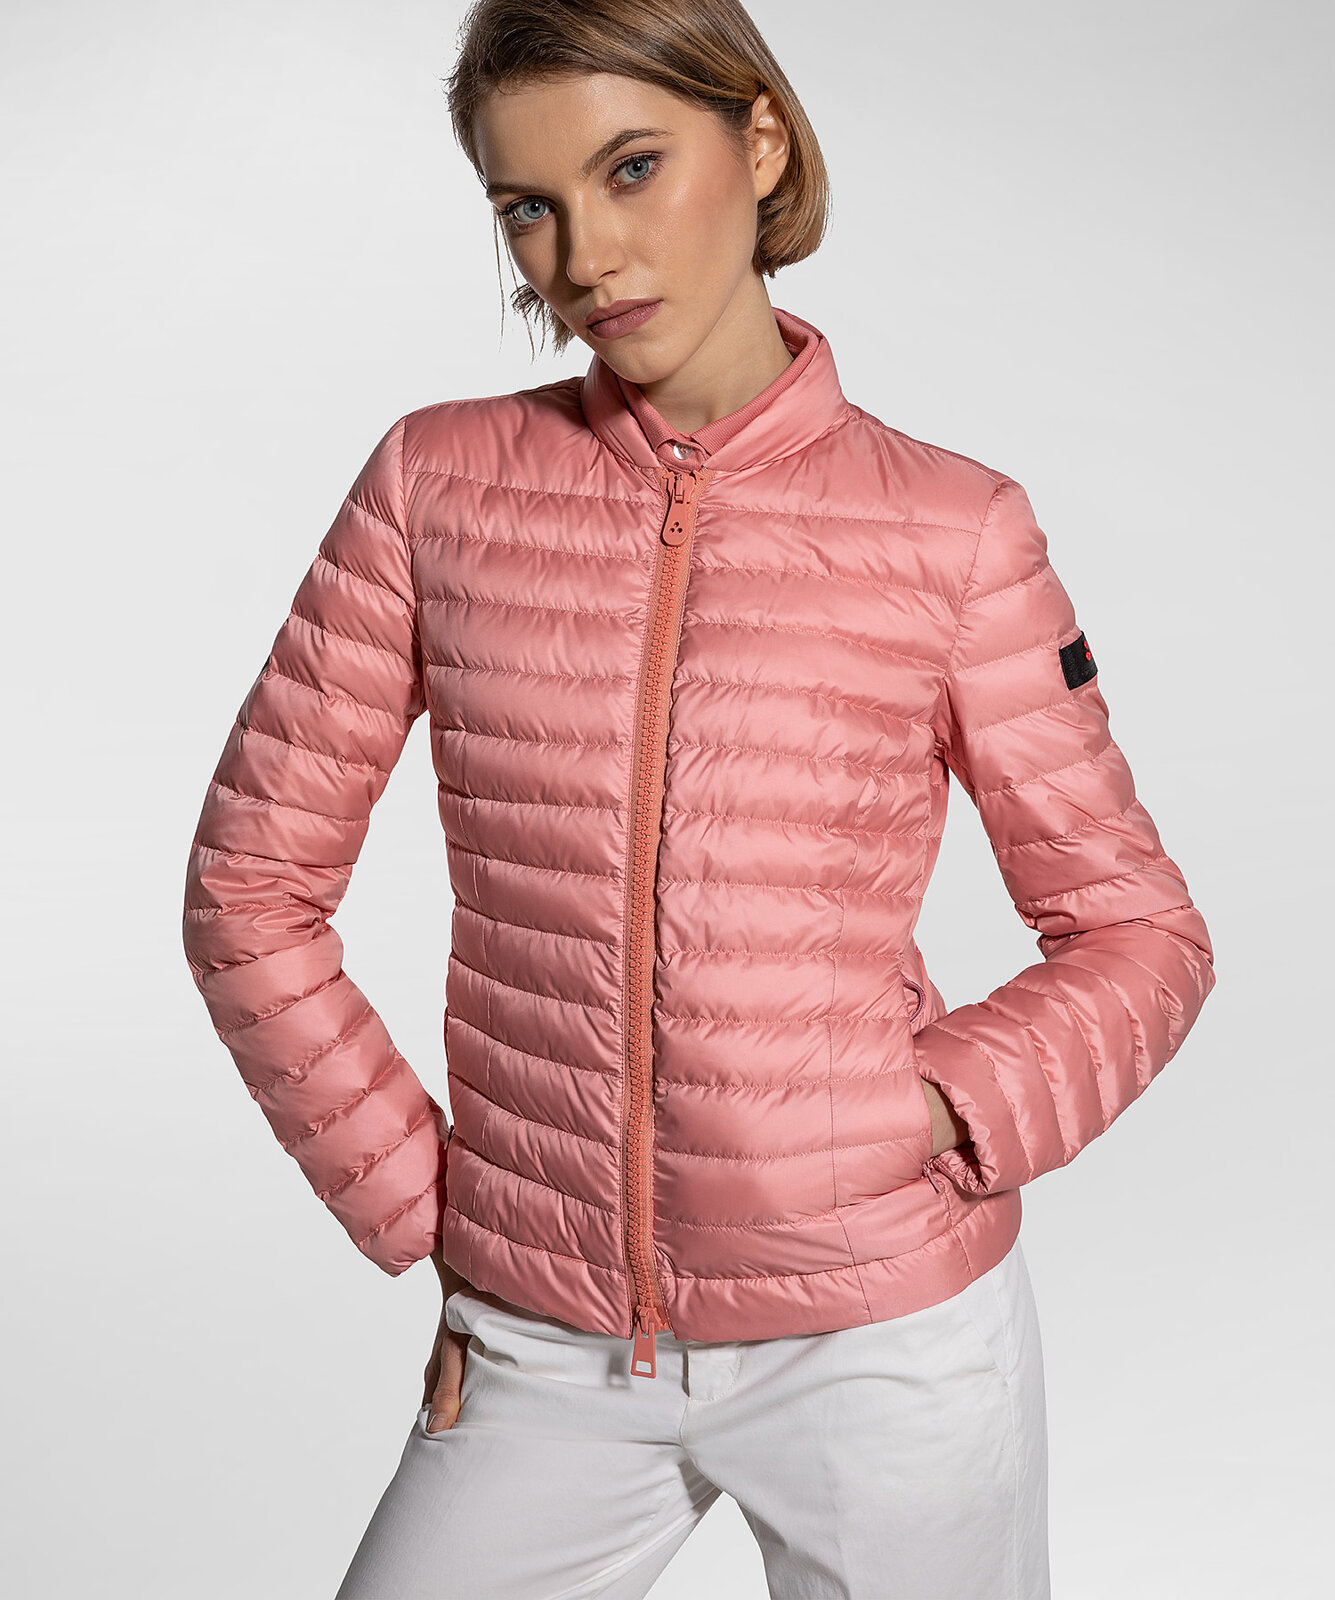 Ultralight And Water Repellent Down Jacket - Peuterey